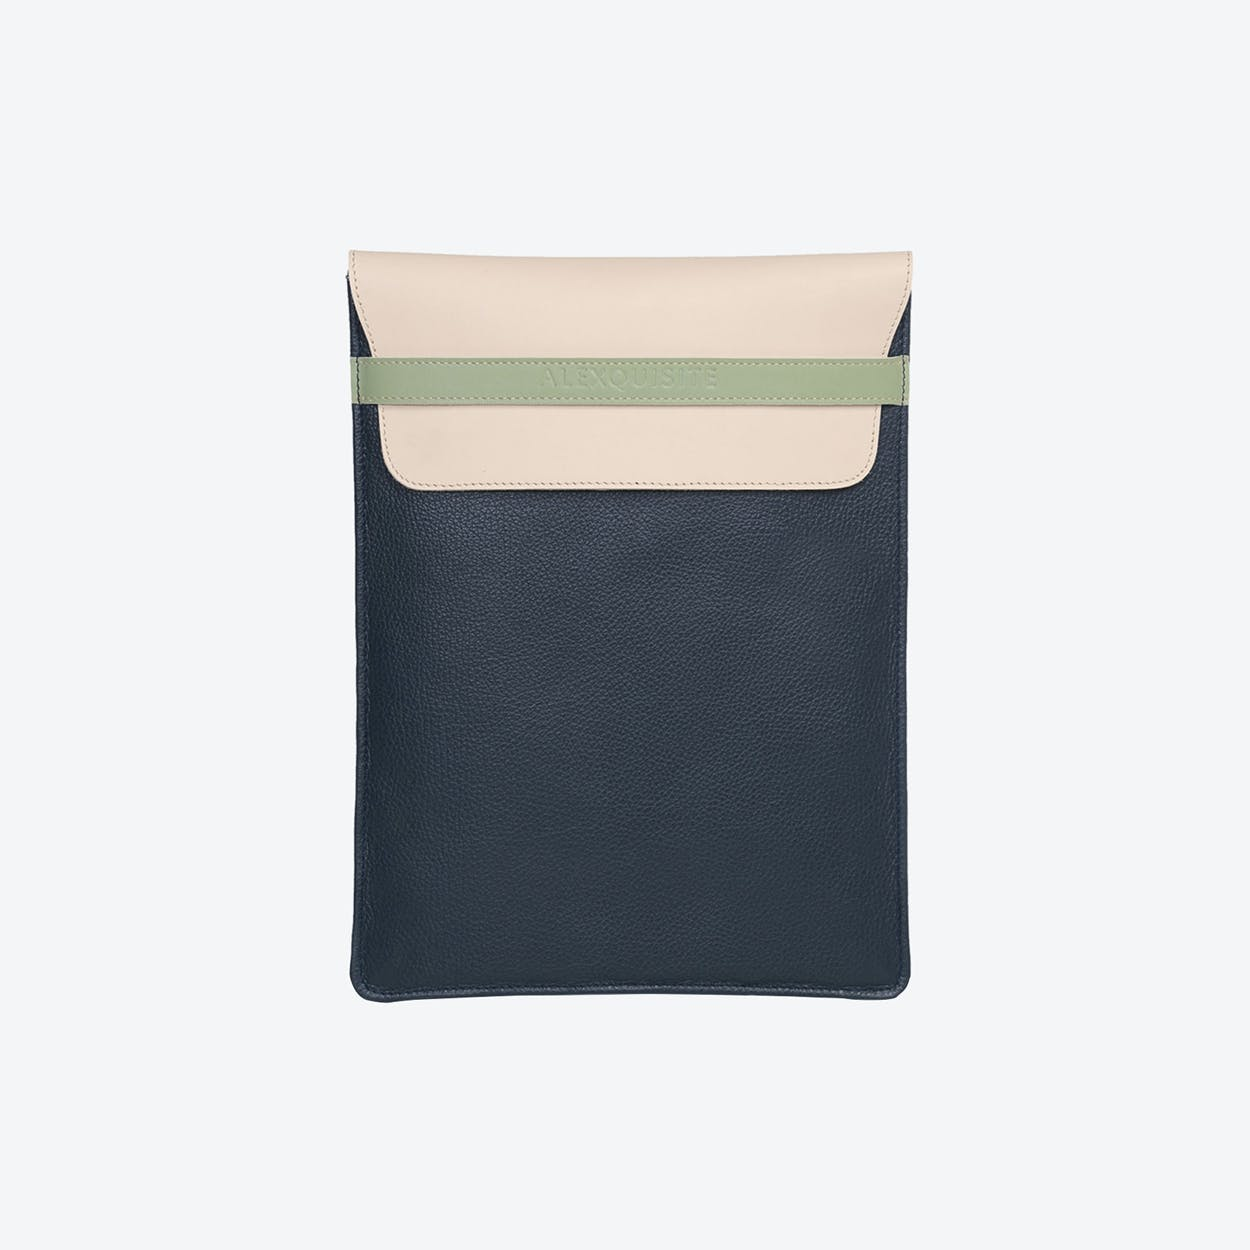 "_ONE 13"" Laptop Case in Olive"